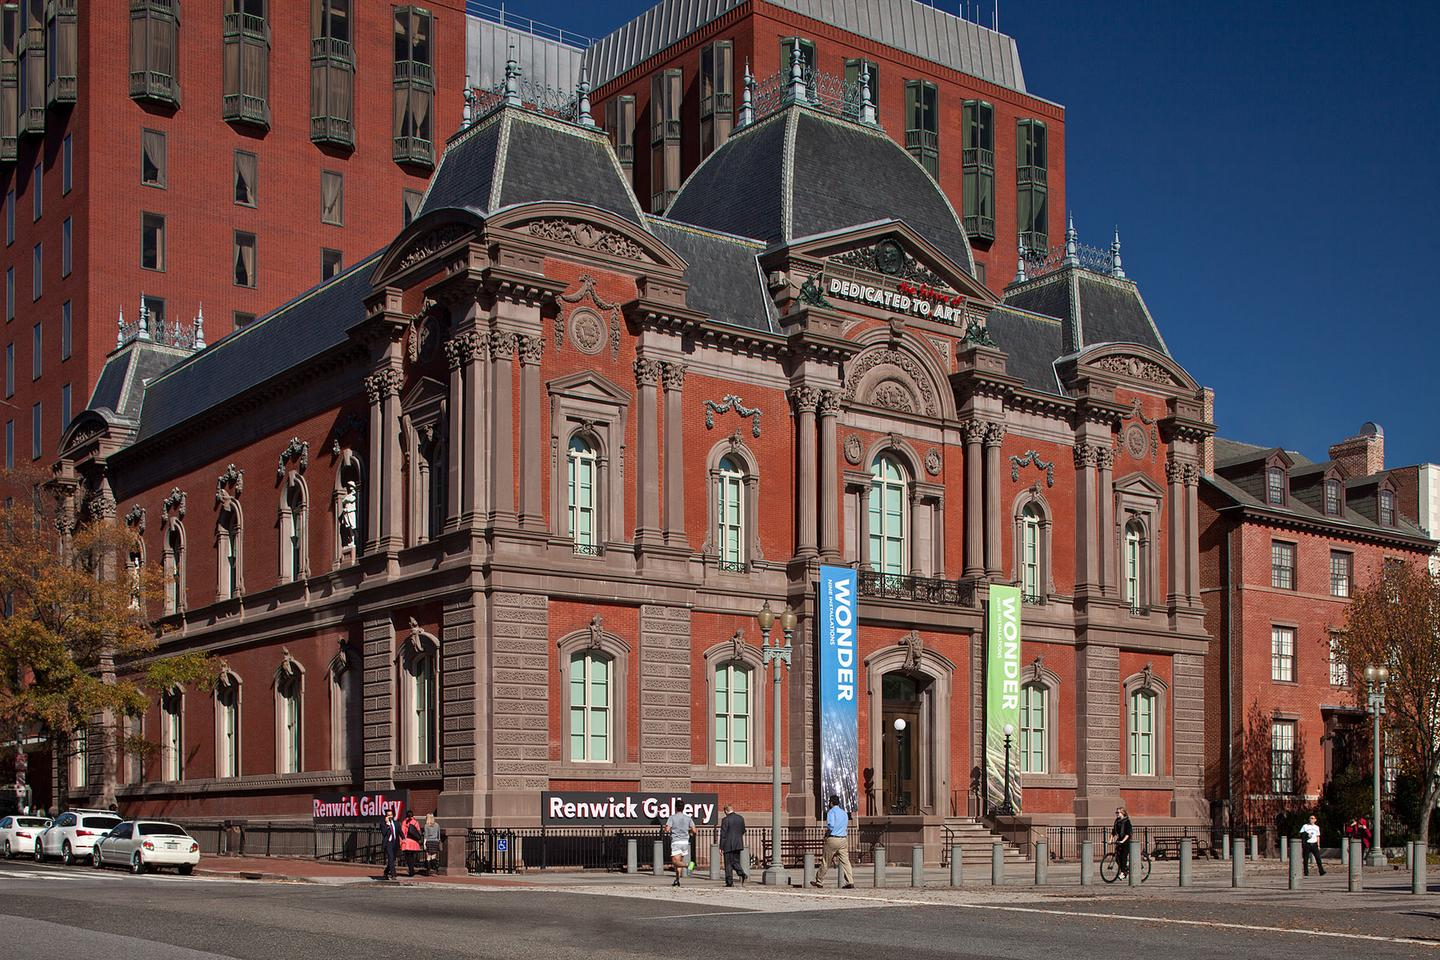 Exterior view of Renwick Gallery